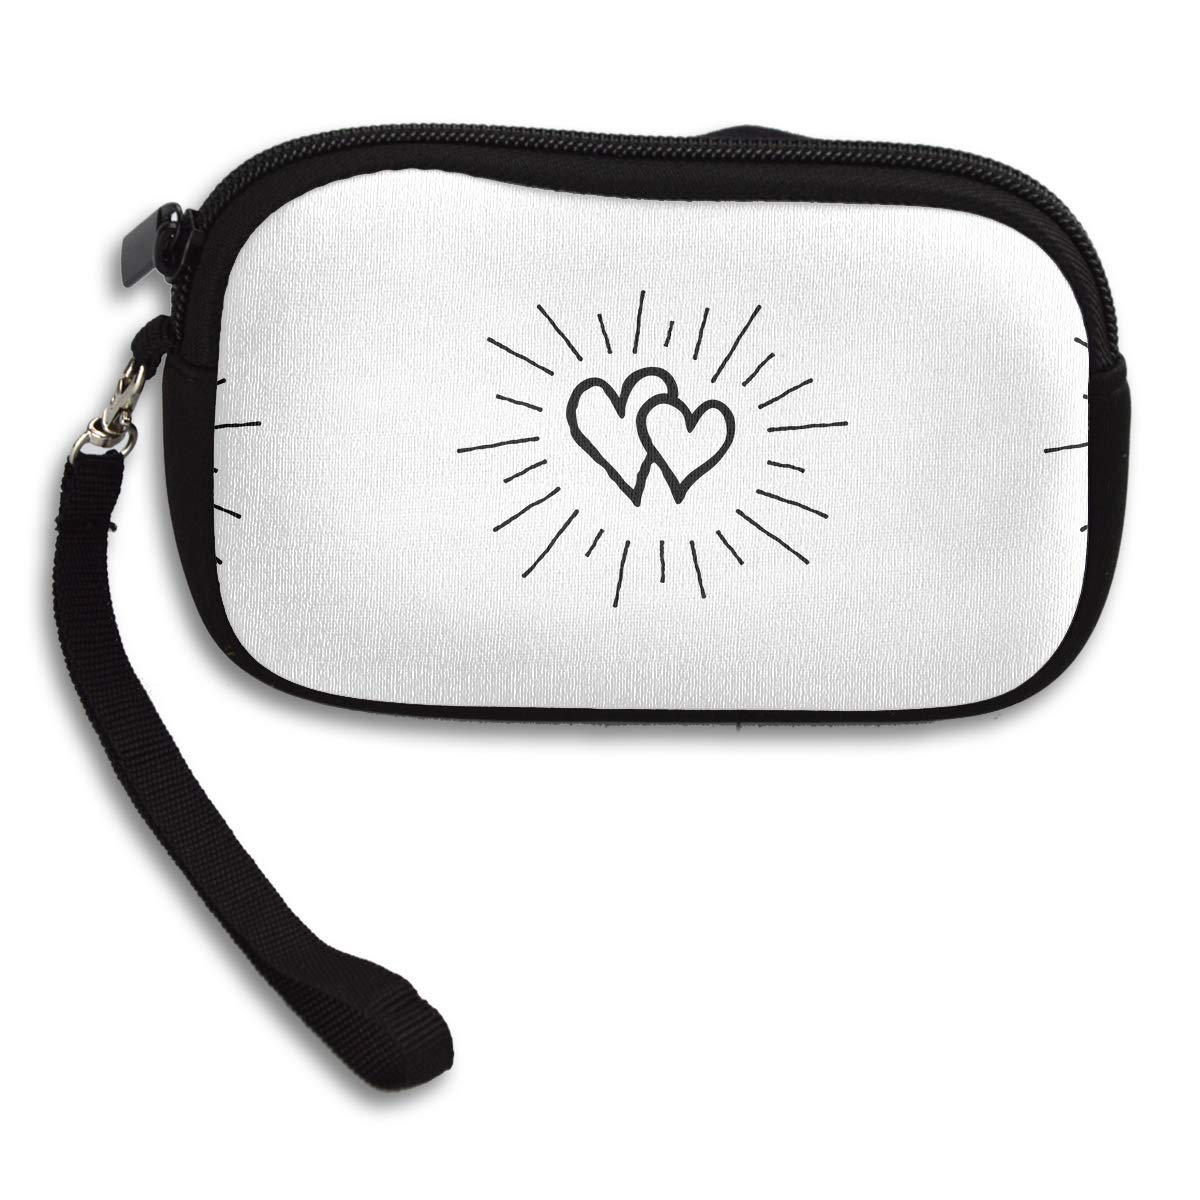 Graffiti With Love Deluxe Printing Small Purse Portable Receiving Bag